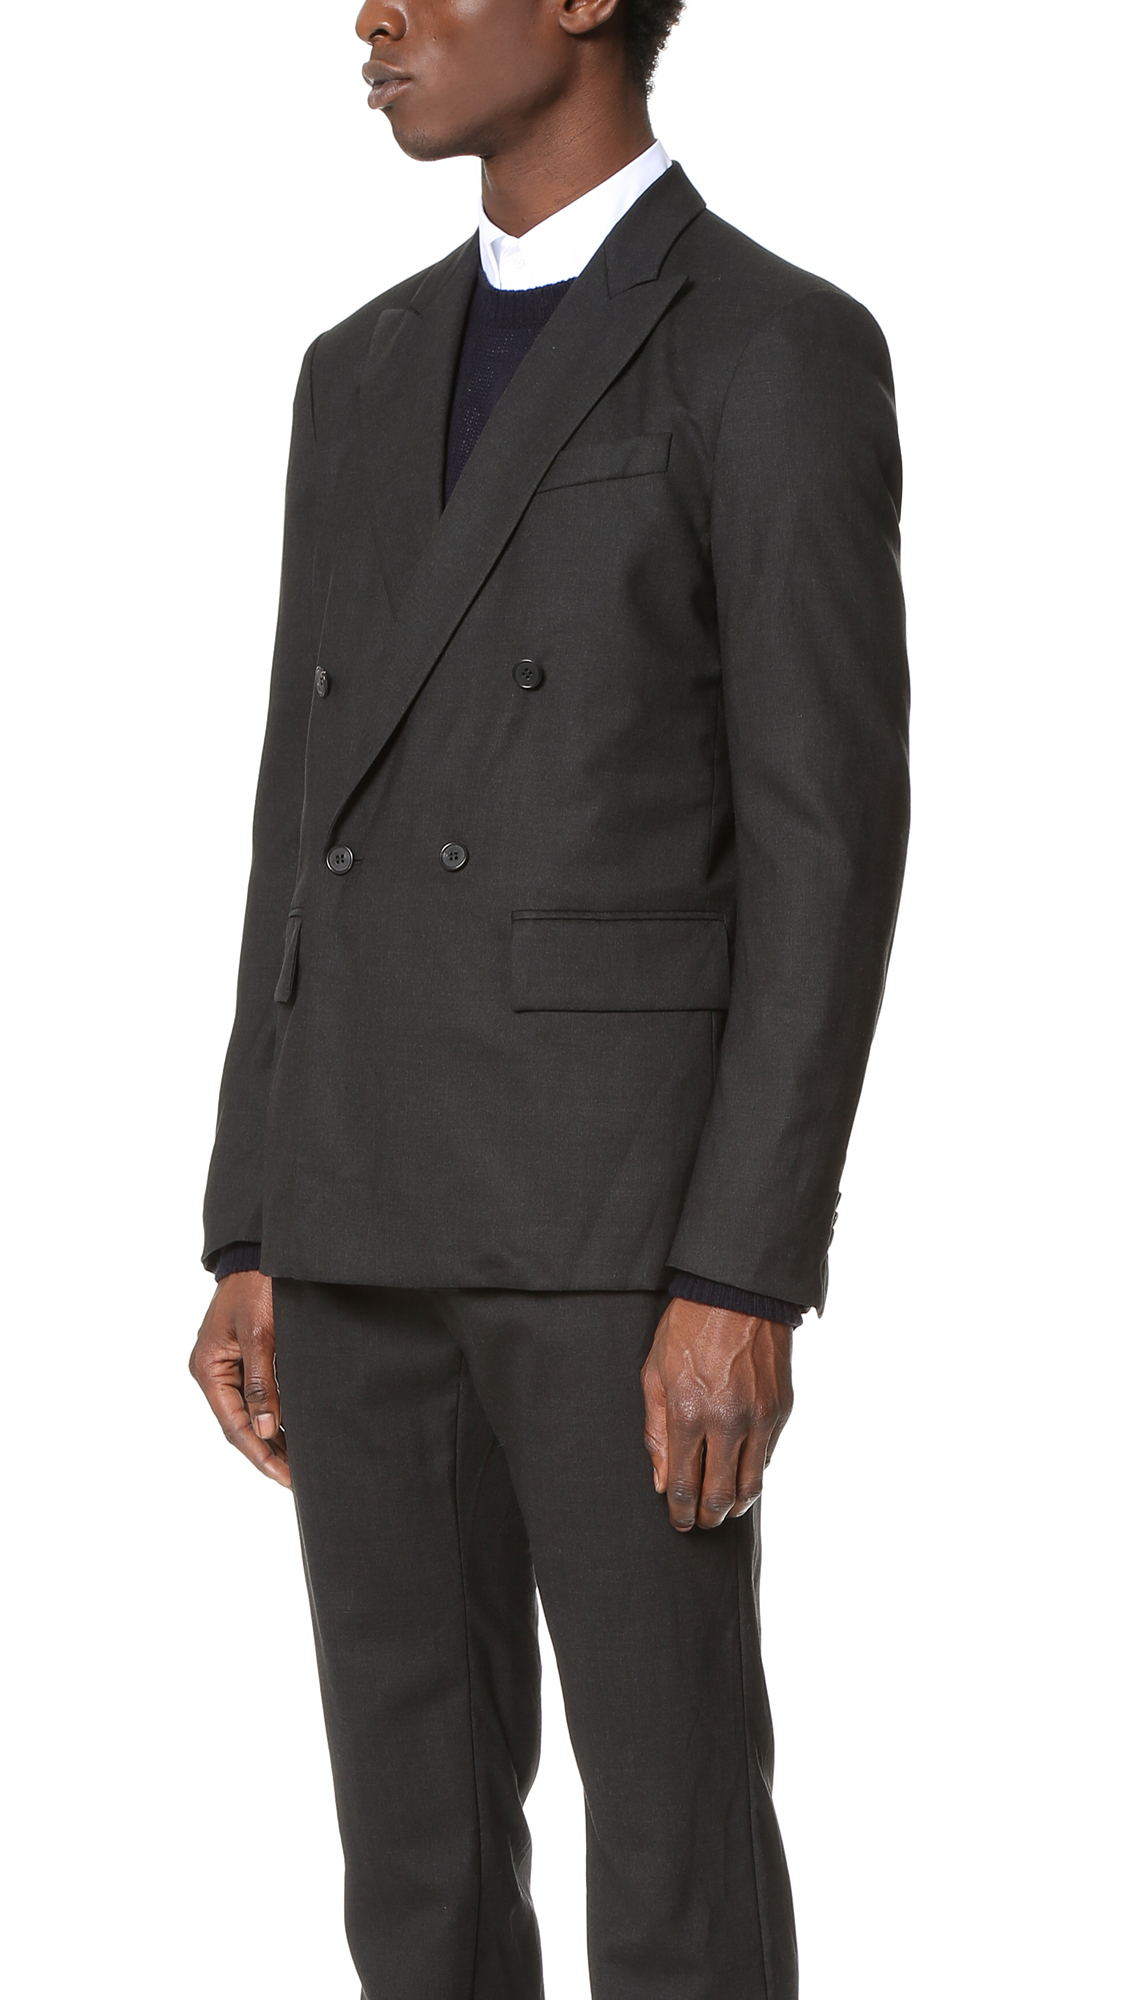 Cheap Recommend Marni double-breasted jacket Best Store To Get For Sale wXmLbyu